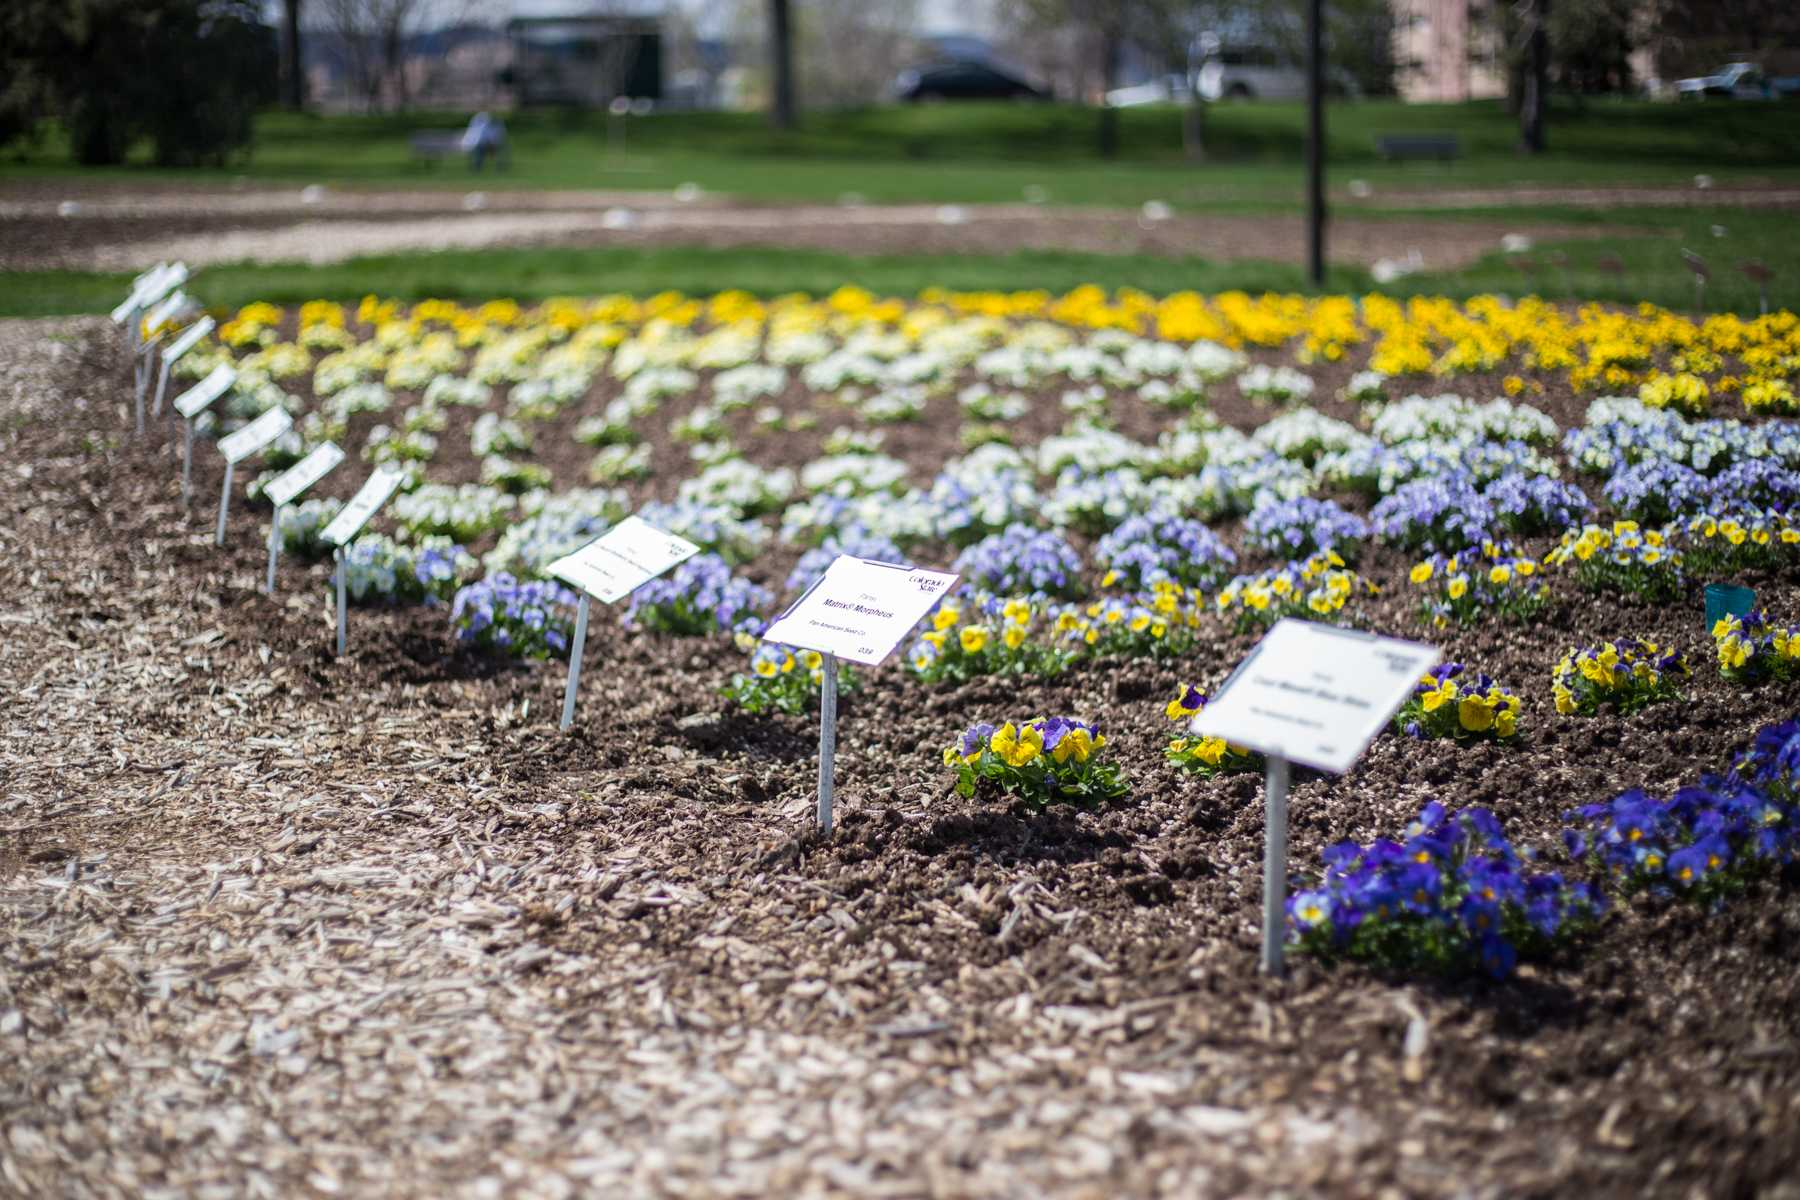 Photos spring flowers planted at the annual flower trial garden photos spring flowers planted at the annual flower trial garden izmirmasajfo